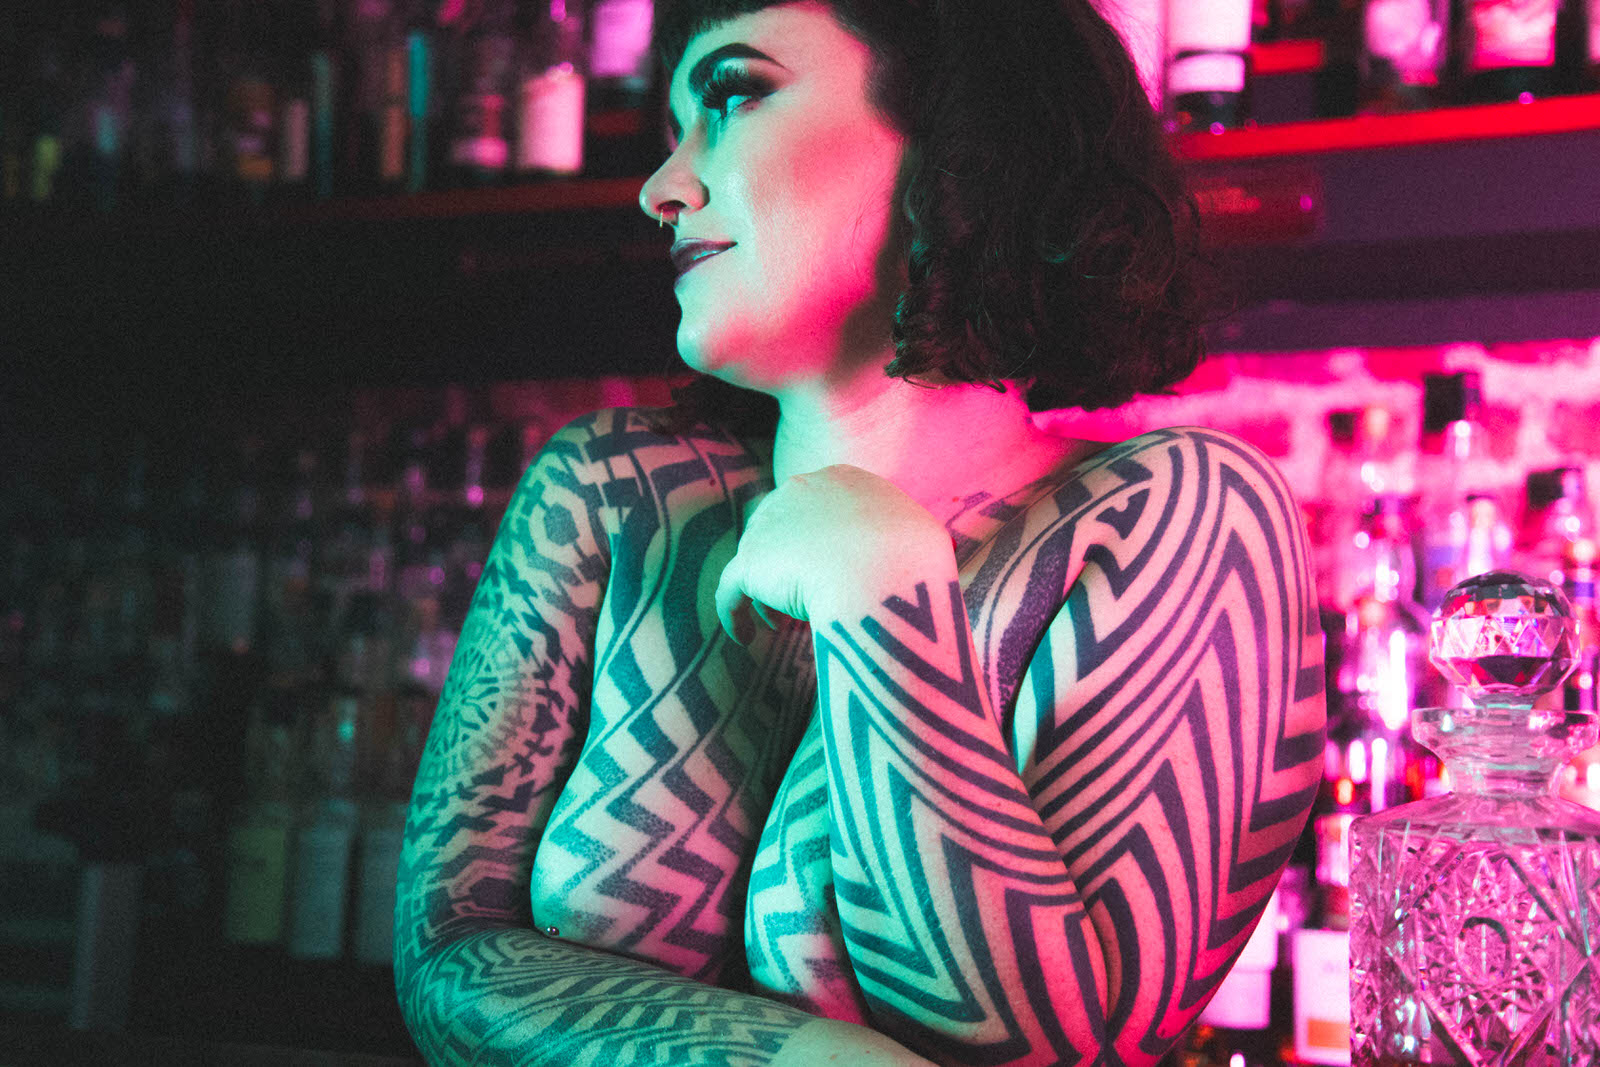 miss tallula naked date, nude date, submission, whisky date, social date, whisky mistress